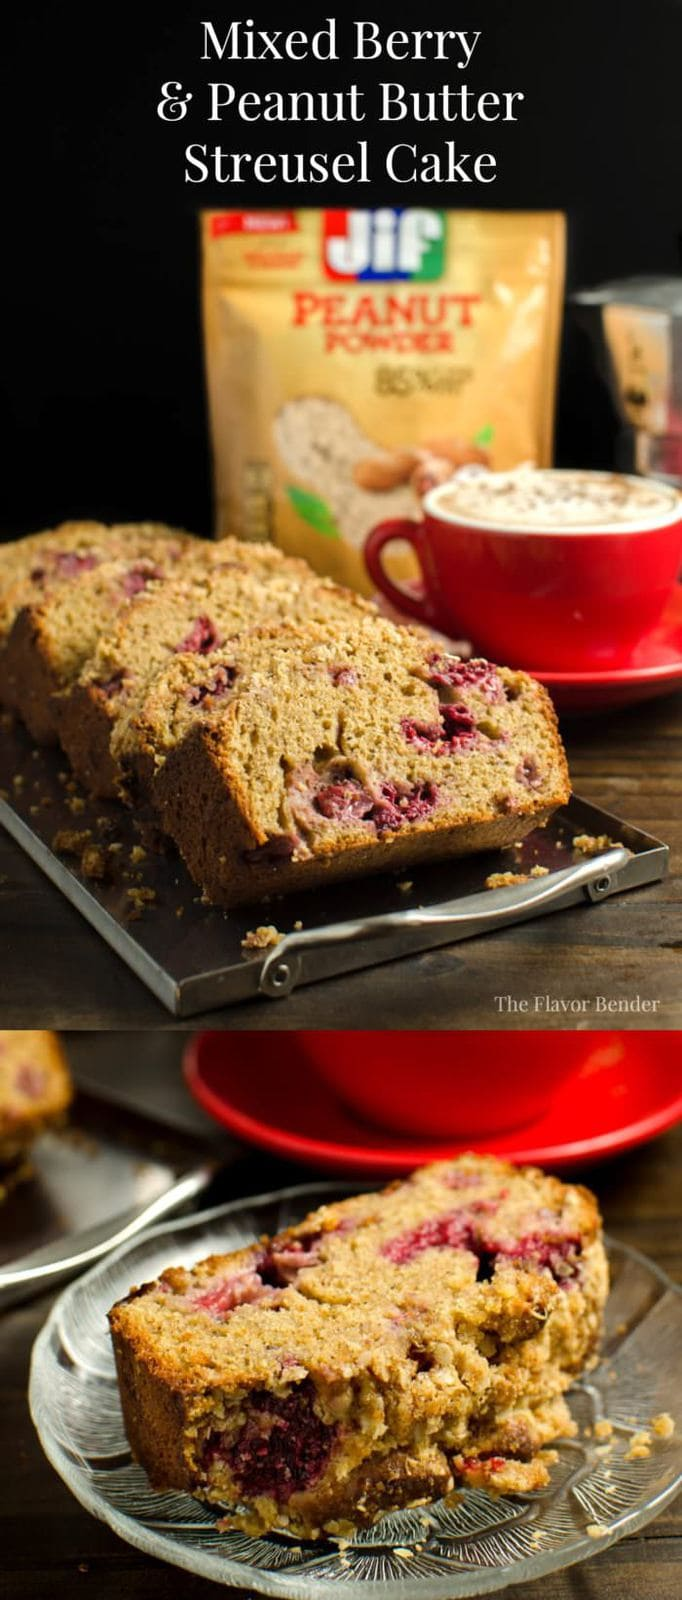 Easy to make Mixed Berry and Peanut Butter Streusel Cake made with Peanut Powder! A delicious cake perfect for breakfast or to enjoy with coffee or tea in the afternoon! Perfectly sweet and a great twist on Peanut Butter and Jelly! #StartwithJifPowder [ad]